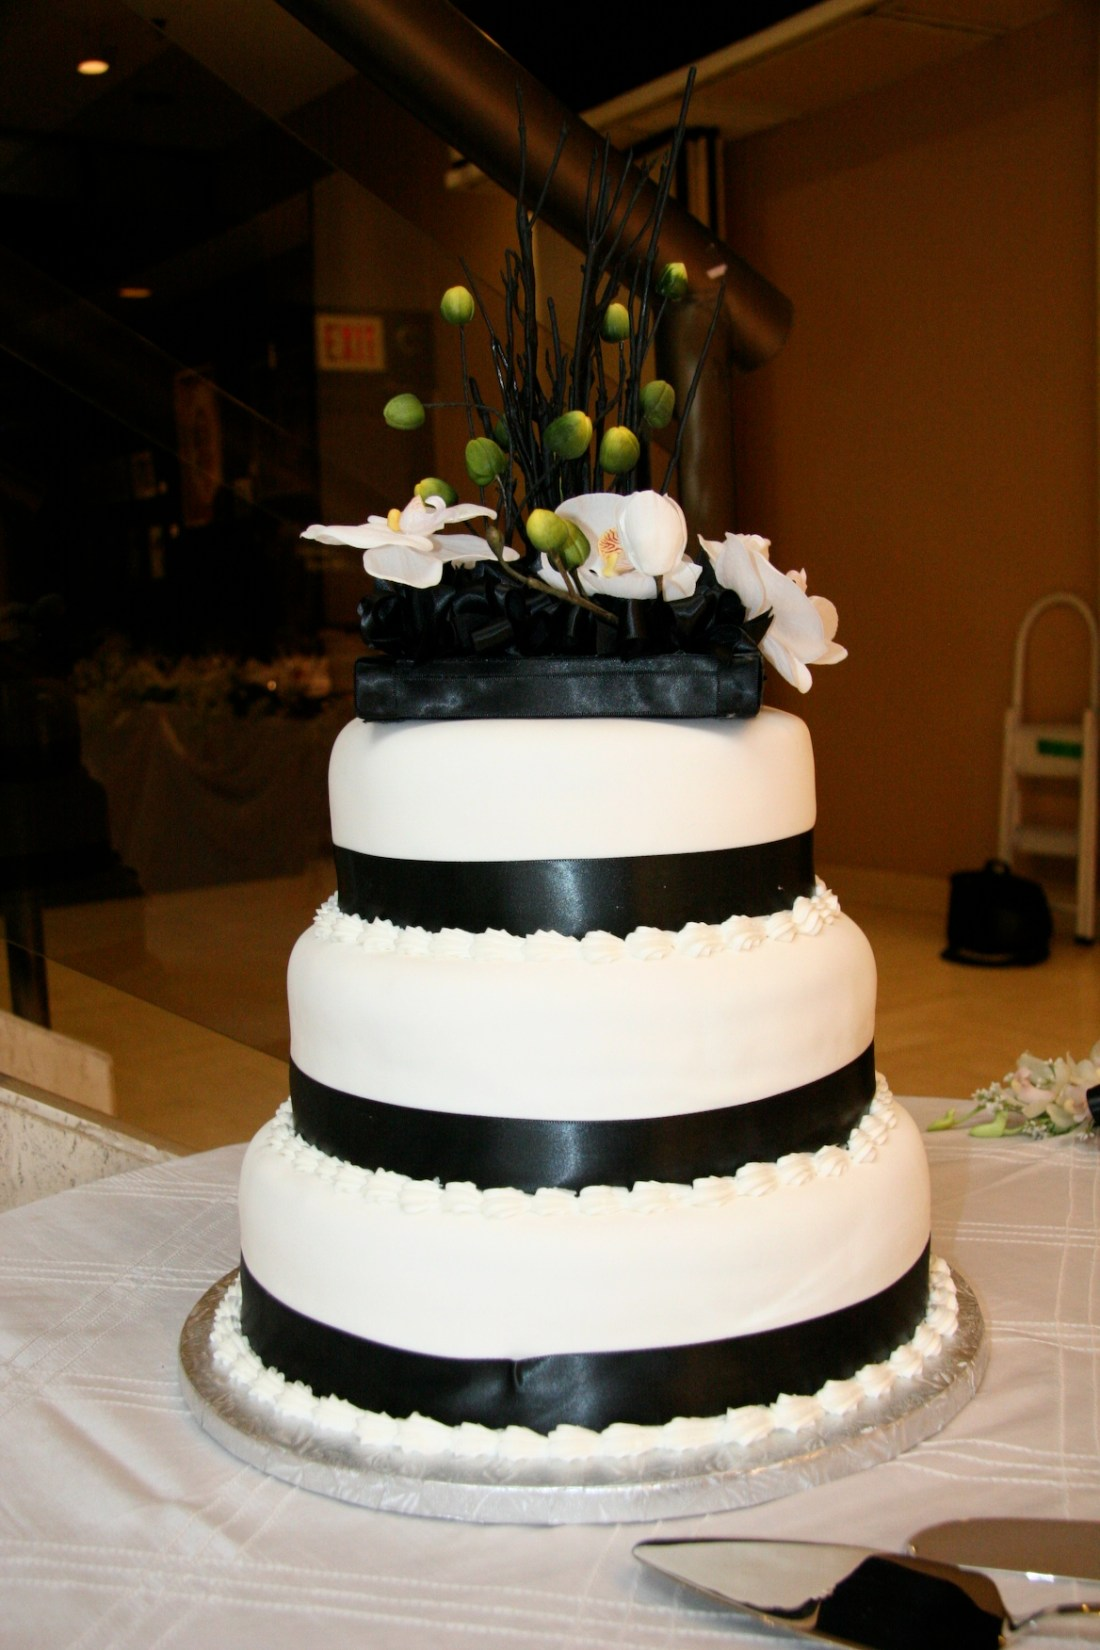 Top Wedding Cake - Black cake